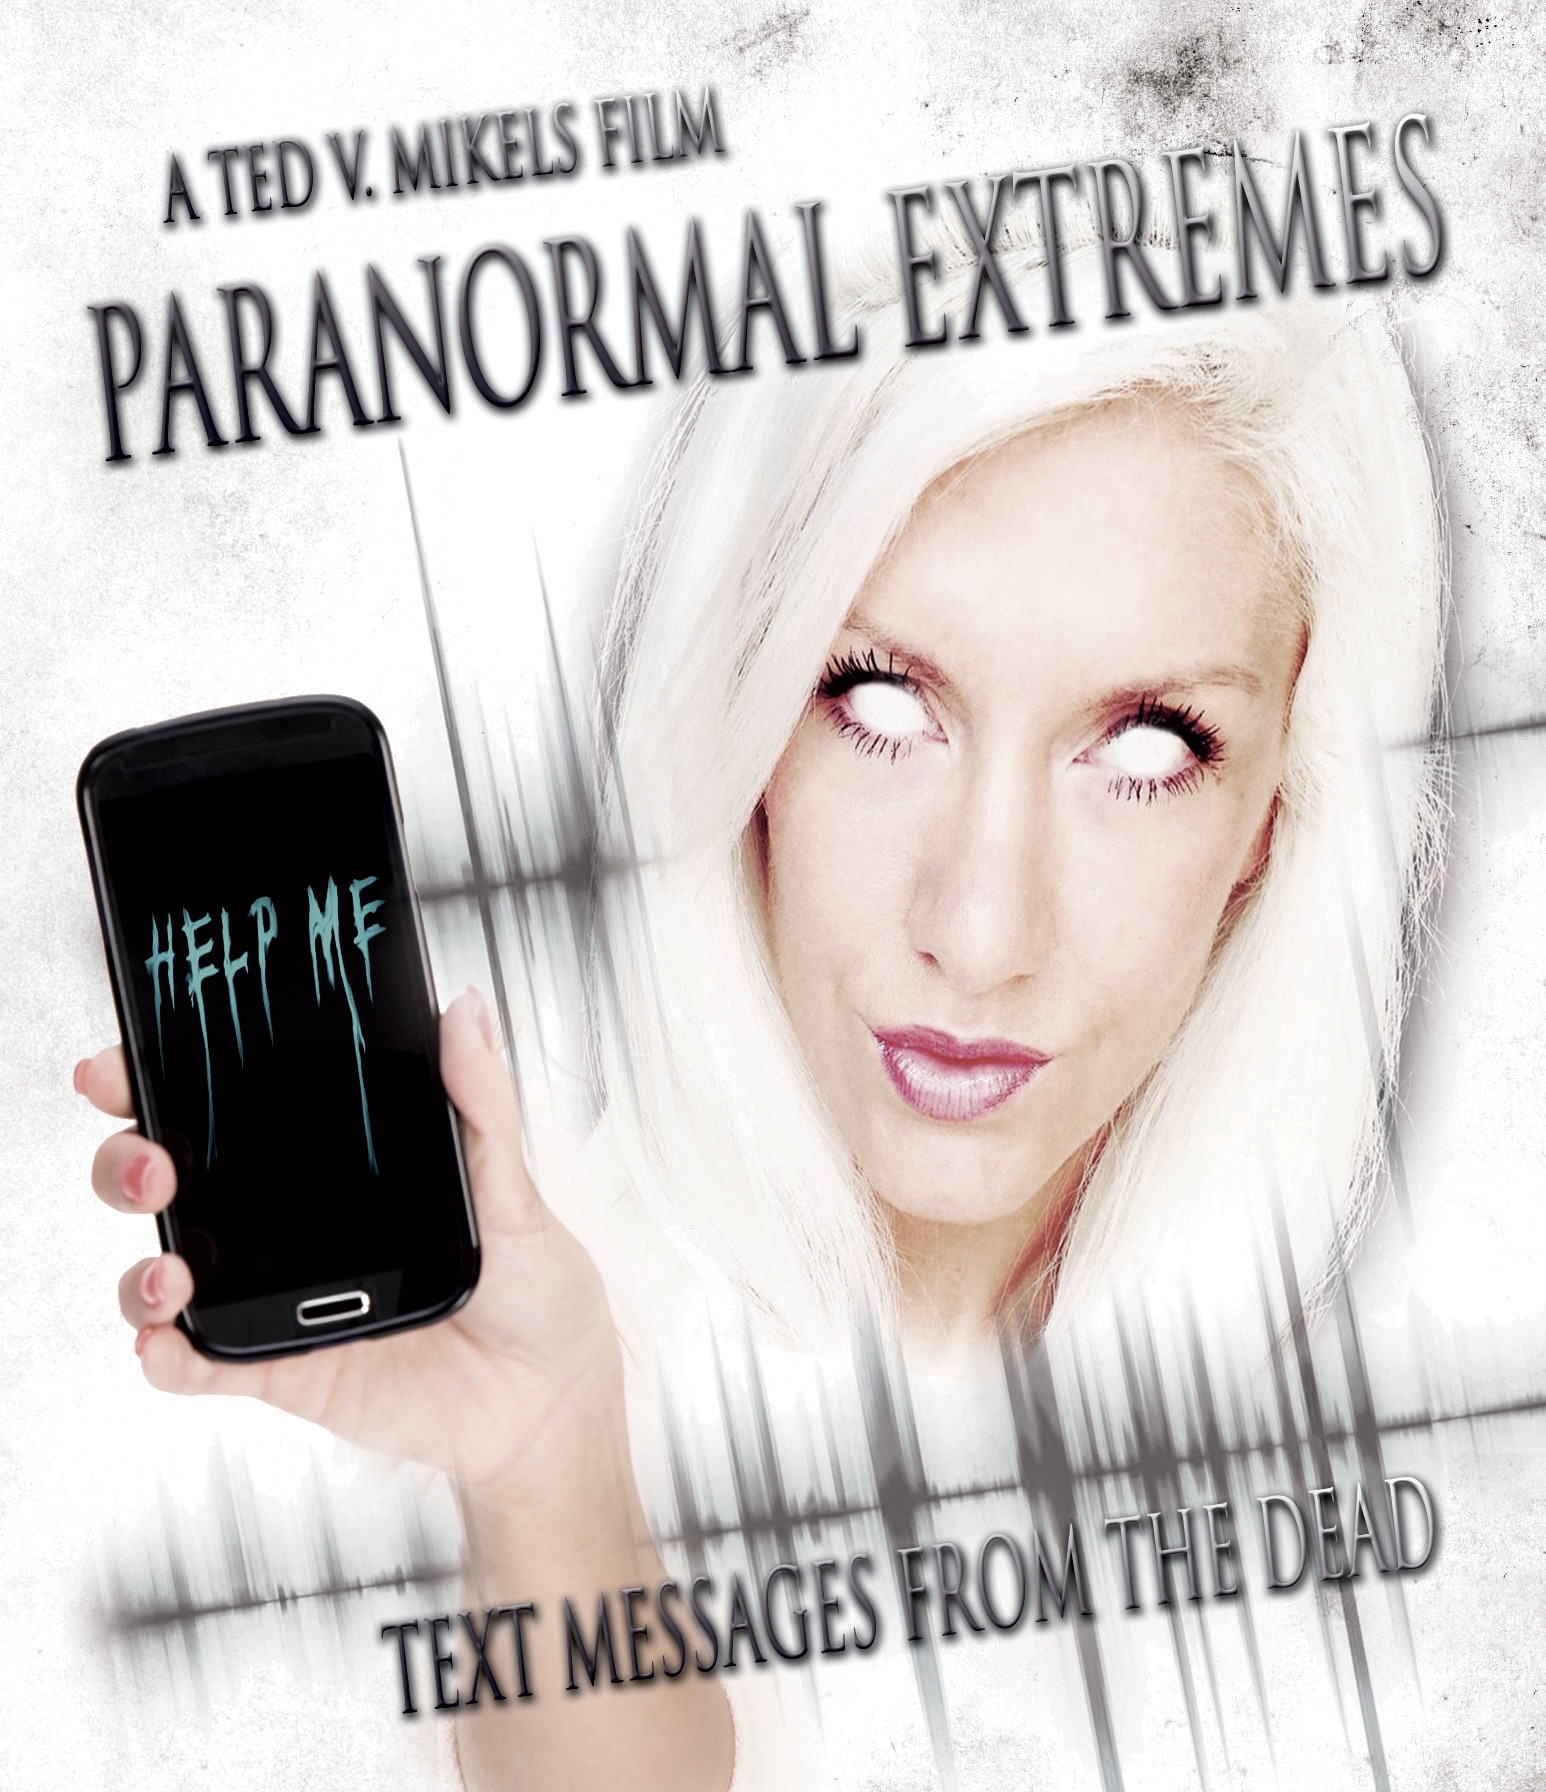 Paranormal Extremes